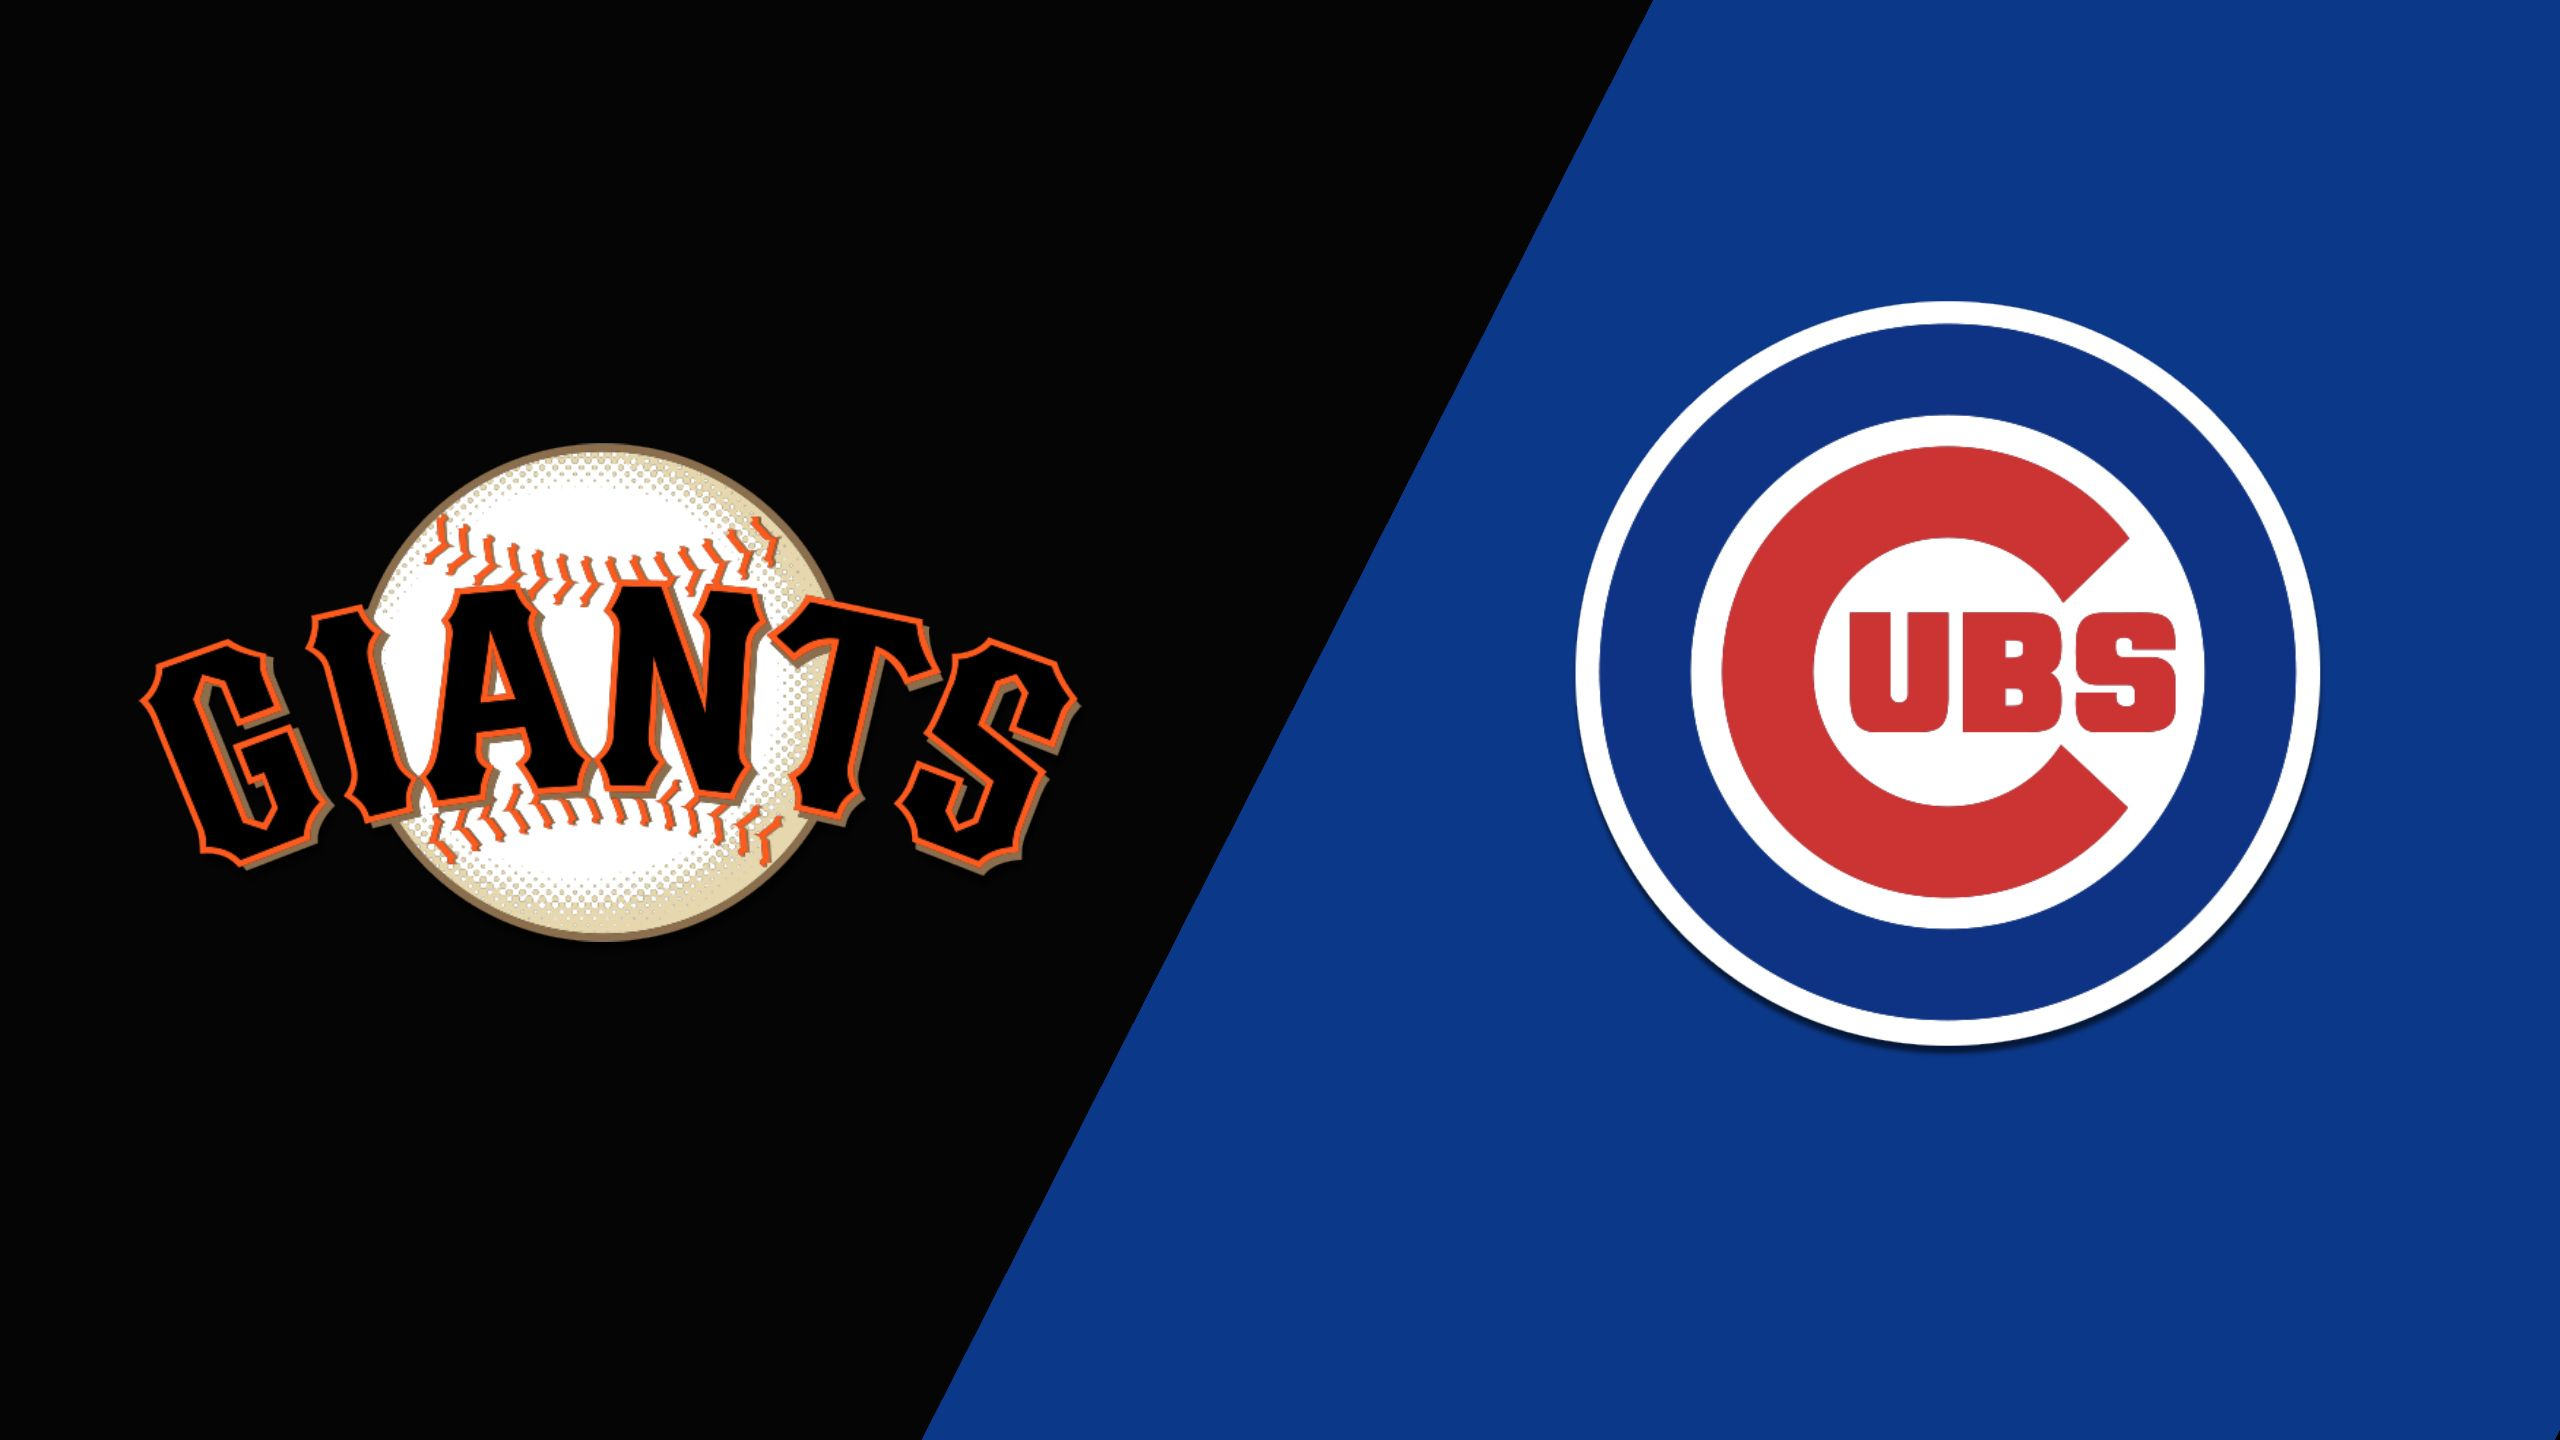 In Spanish - San Francisco Giants vs. Chicago Cubs